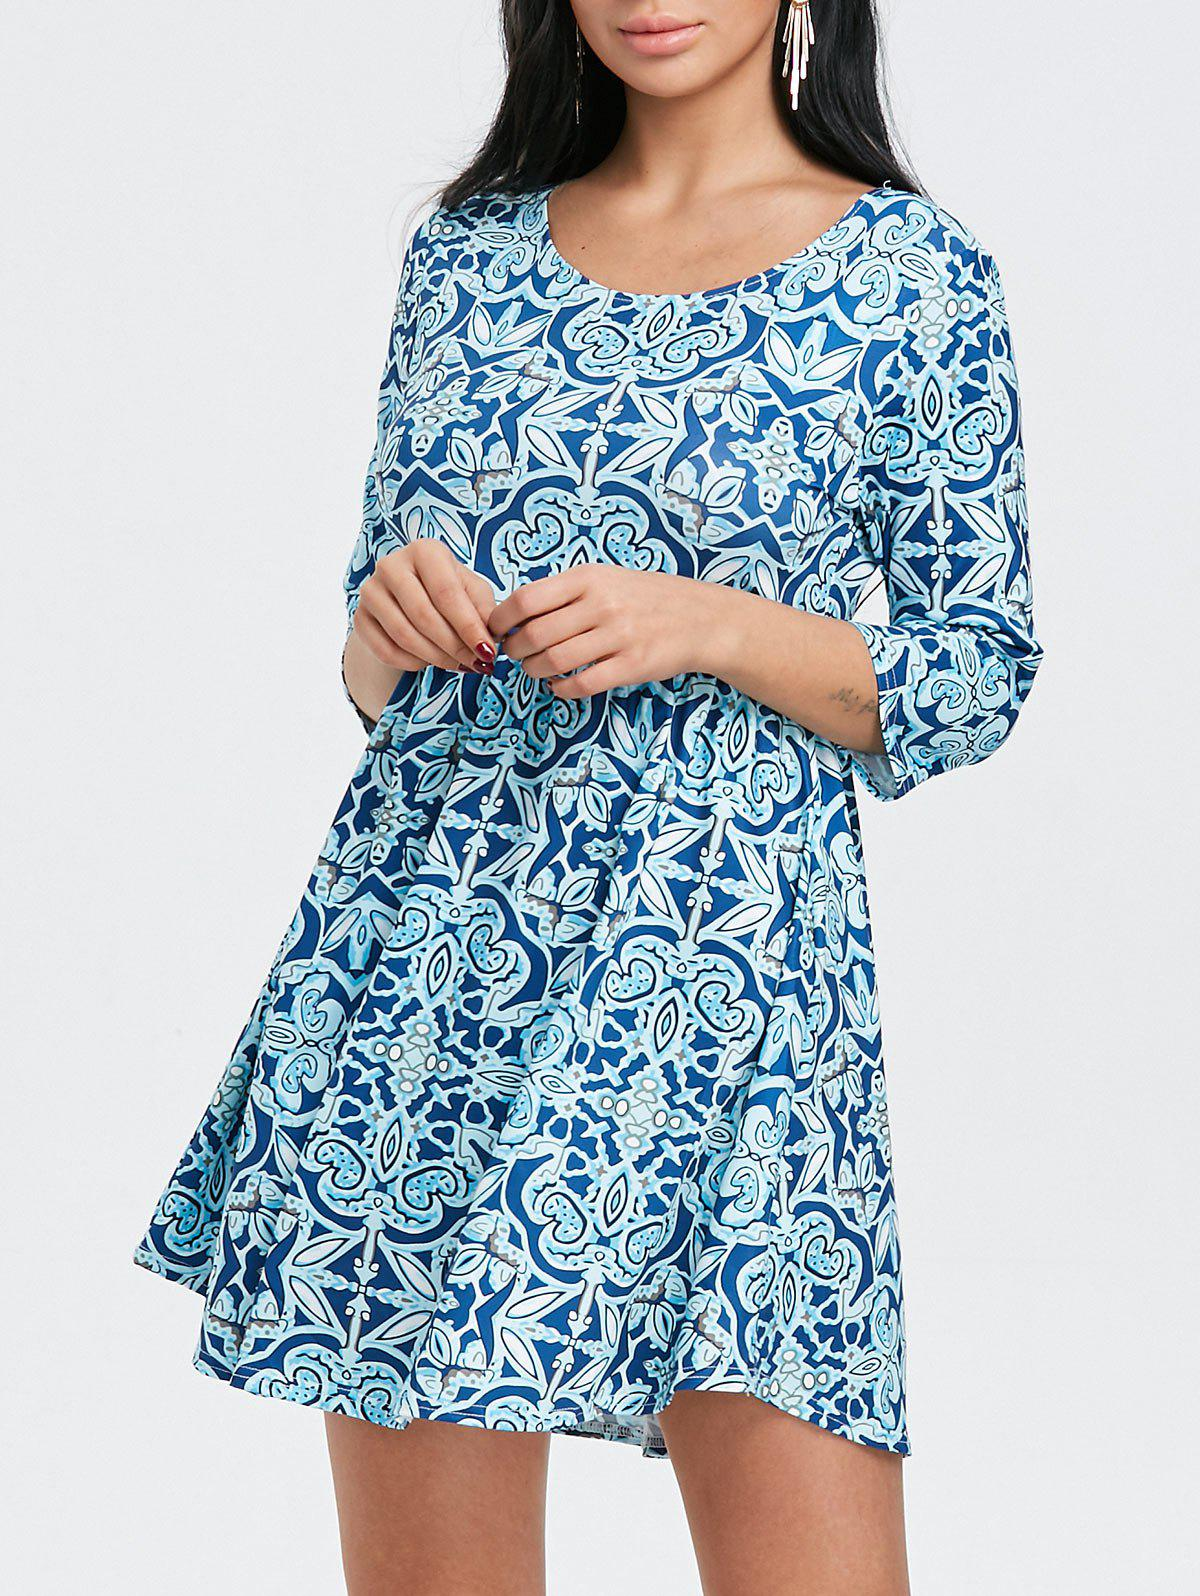 Scoop Neck Floral Print Mini Dress - BLUE XL